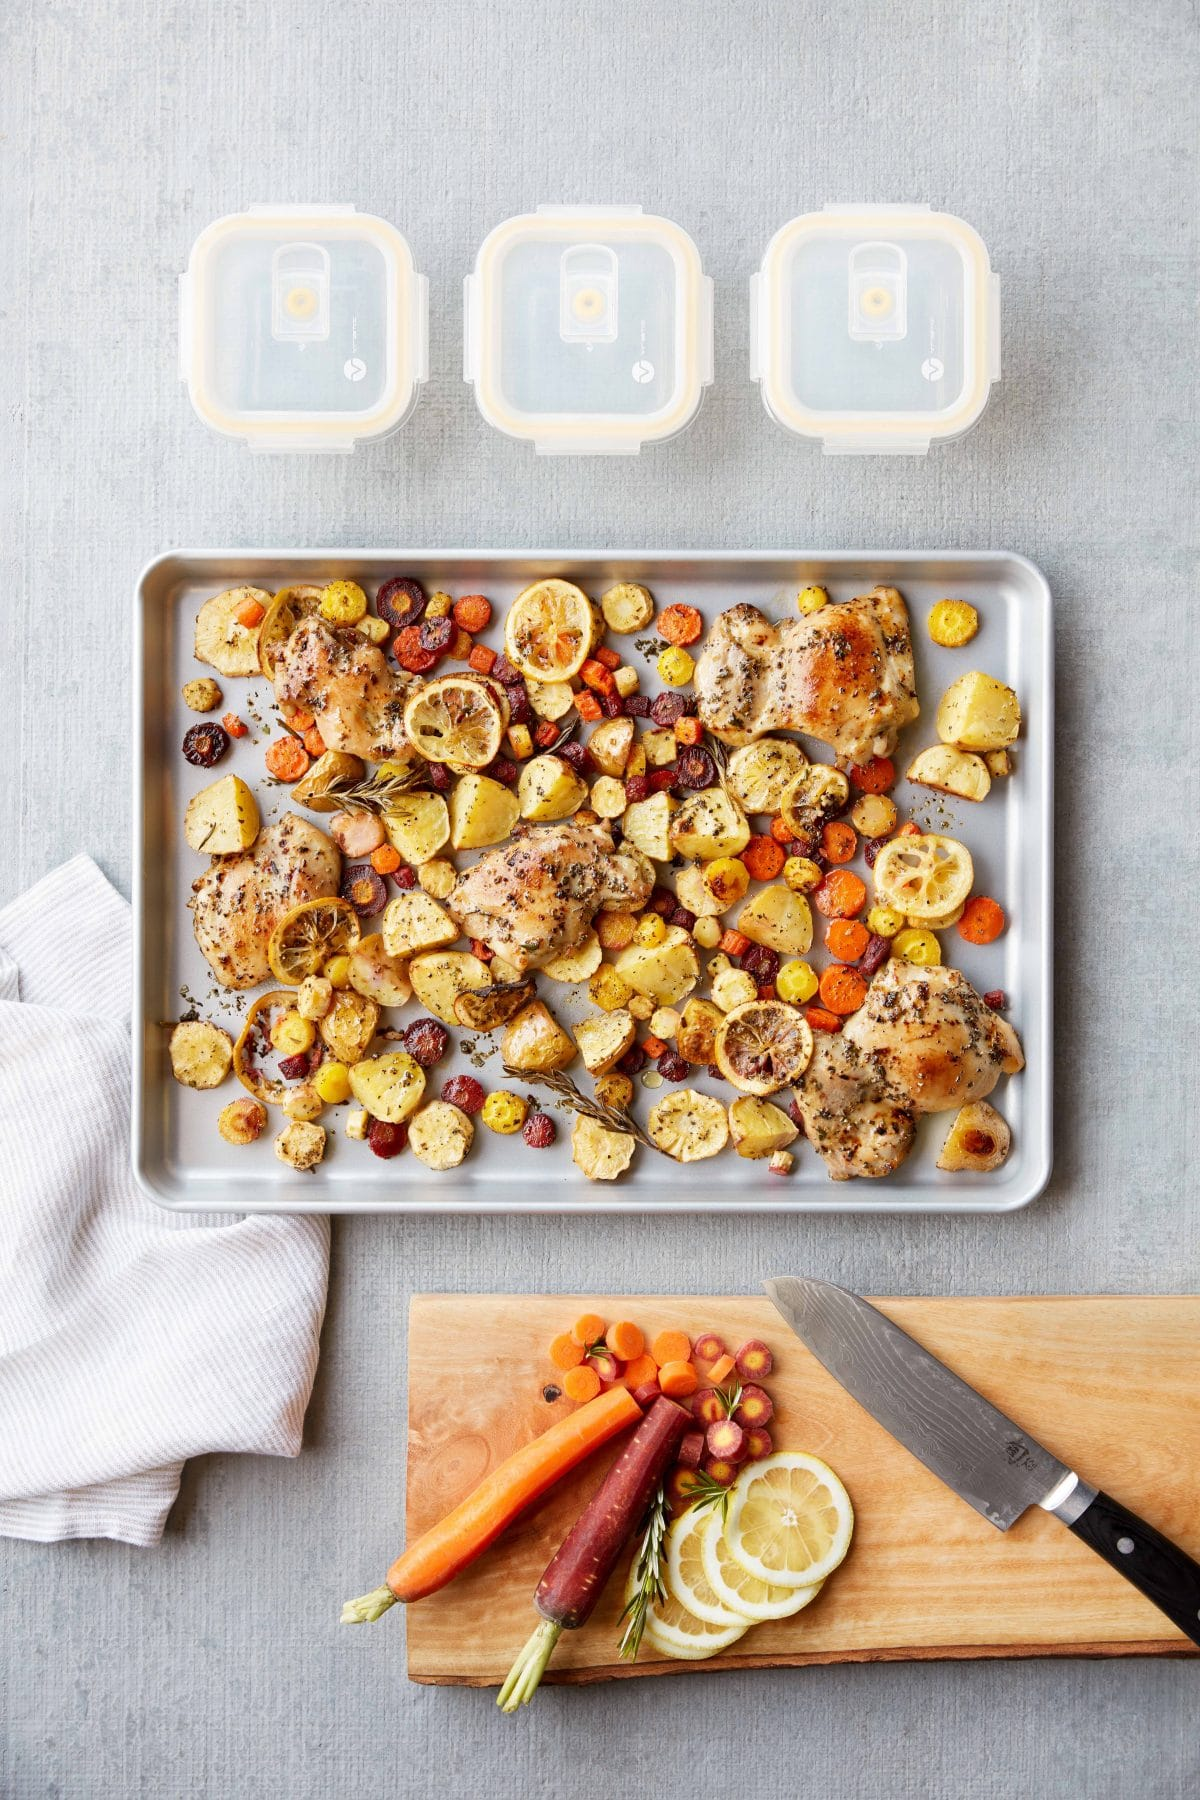 This sheet pan lemon chicken recipe is a super easy meal prep win!  It's even freezer friendly and gluten free, what's better than that??? #glutenfree #mealprep #healthy #dinner #chicken #paleo #hungryhobby